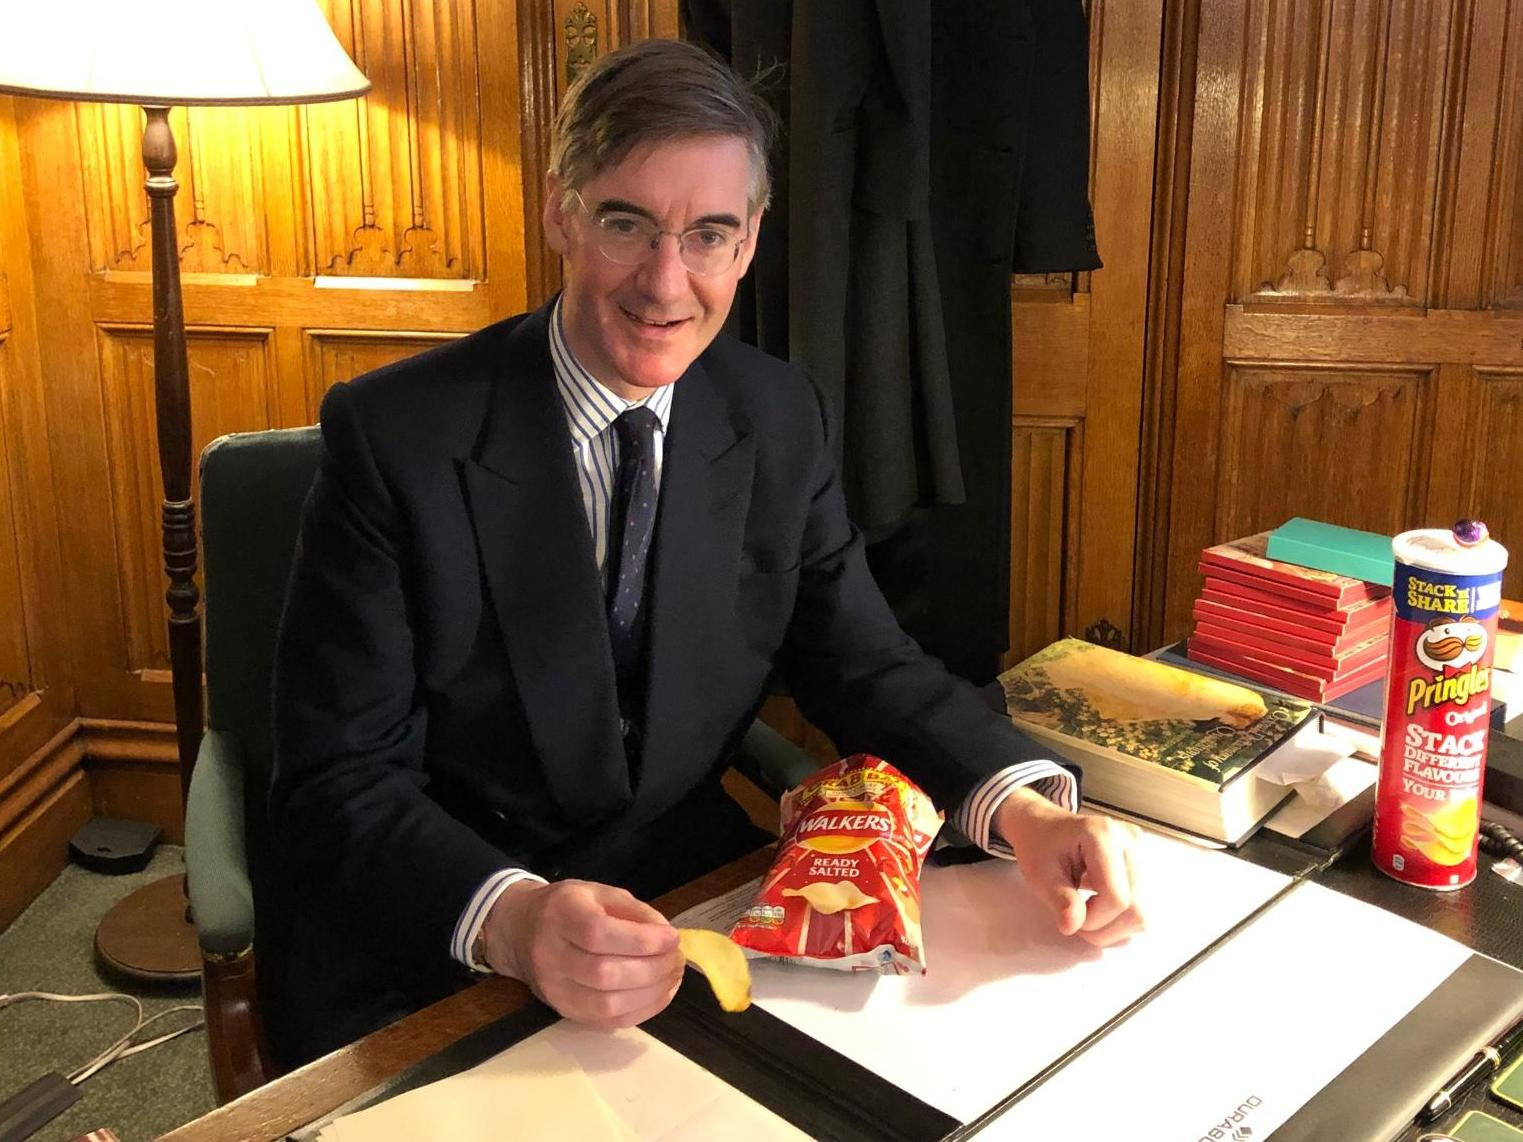 Crisp makers race to distance themselves from Jacob Rees-Mogg after photo with Walkers and Pringles